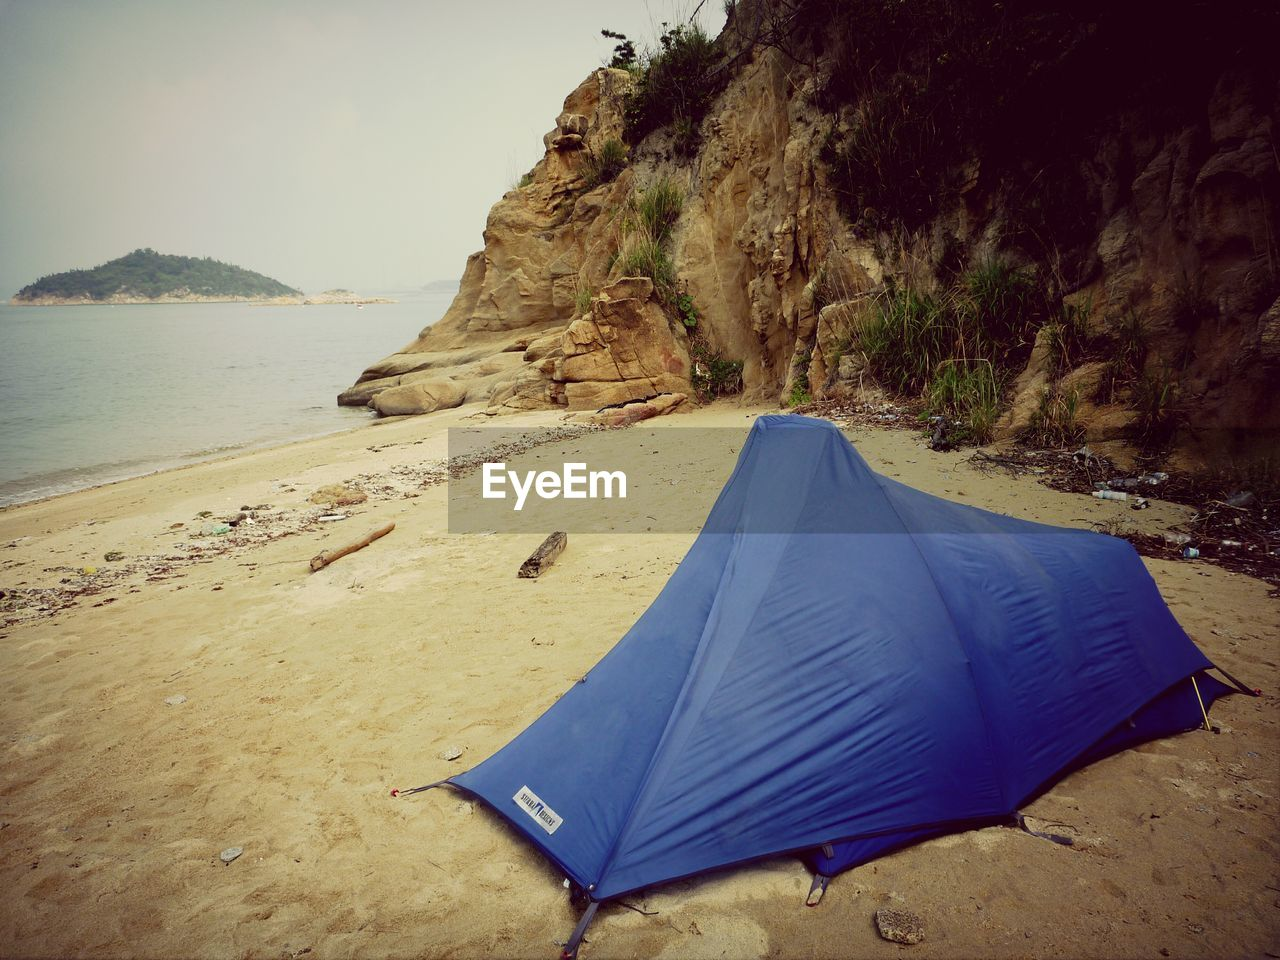 sand, beach, nature, tent, landscape, shelter, tranquility, sea, beauty in nature, no people, mountain, outdoors, day, sky